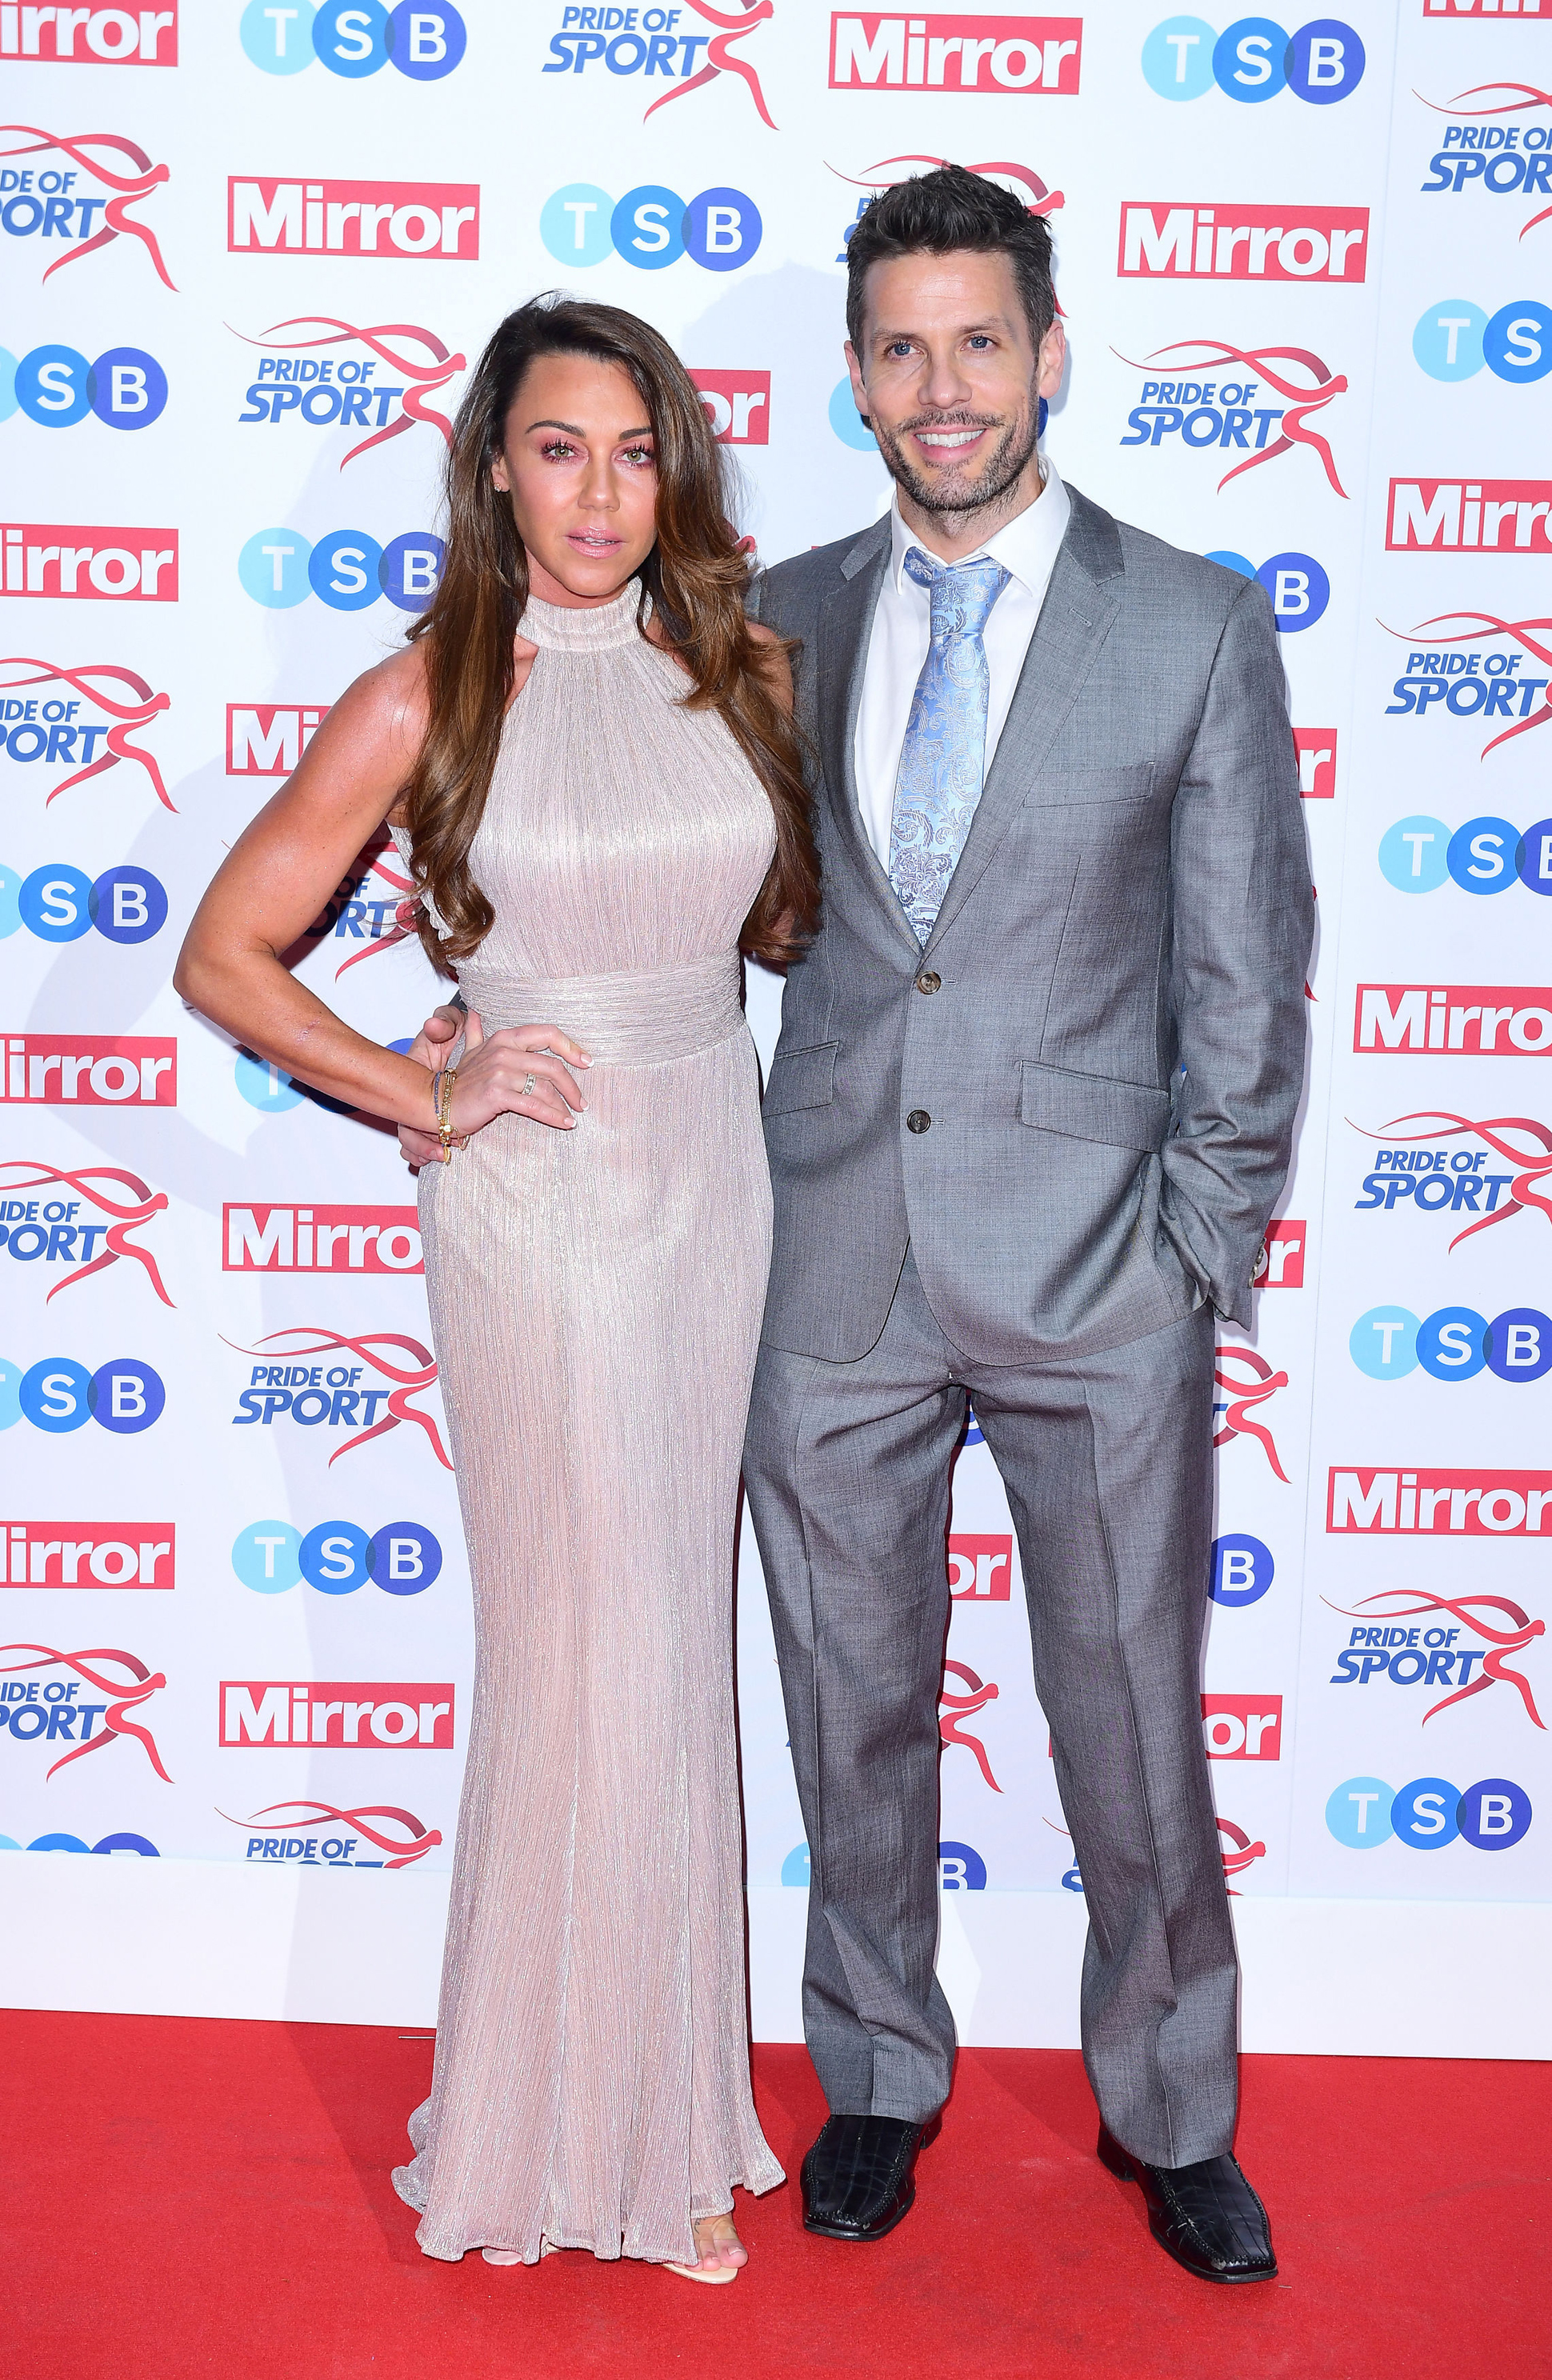 Michelle Heaton and Hugh Hanley at the Pride of Sport awards, London in November